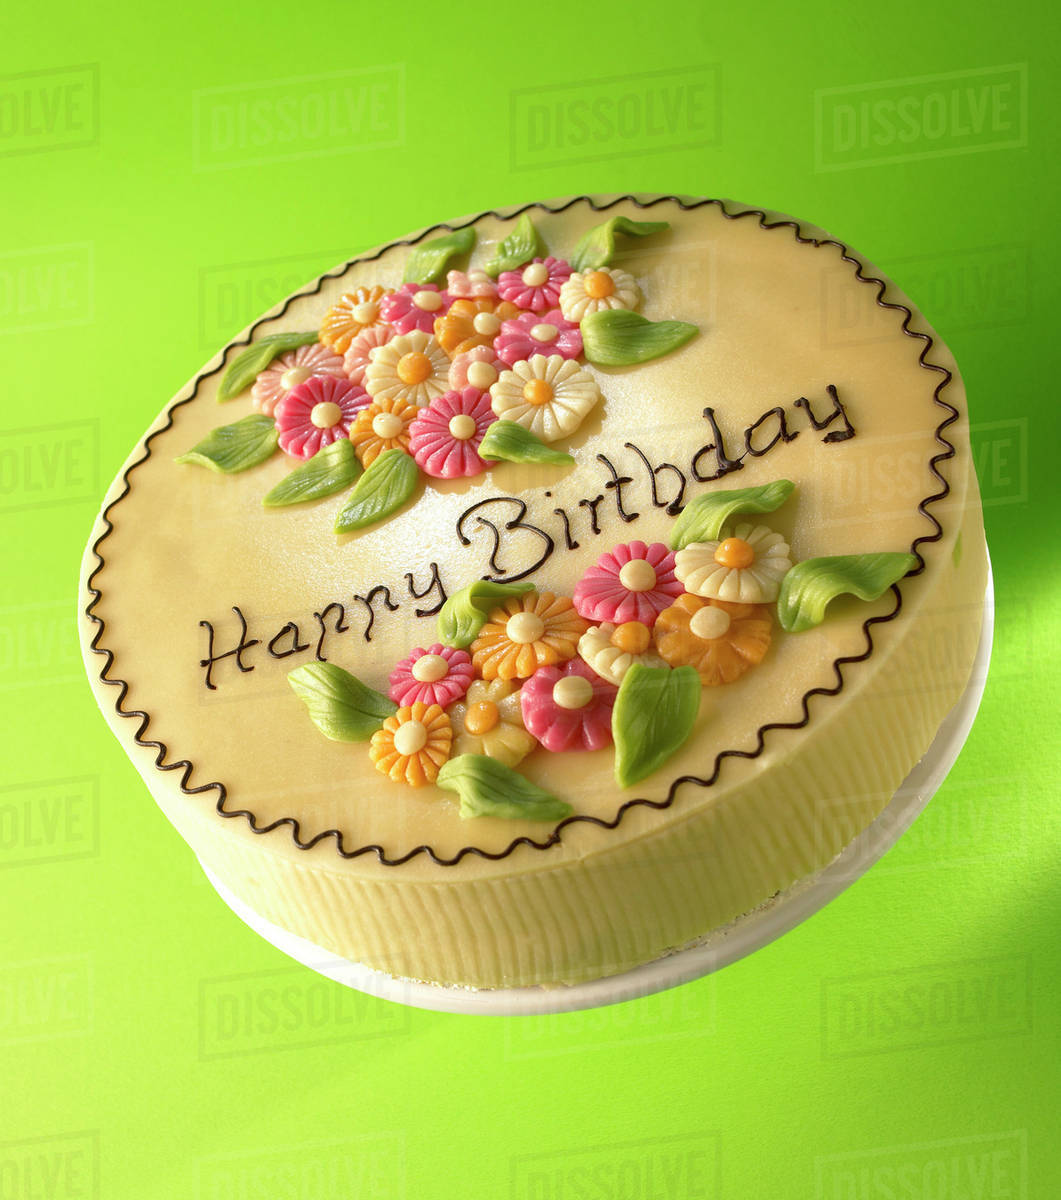 Cake With Marzipan Flowers And The Words Happy Birthday